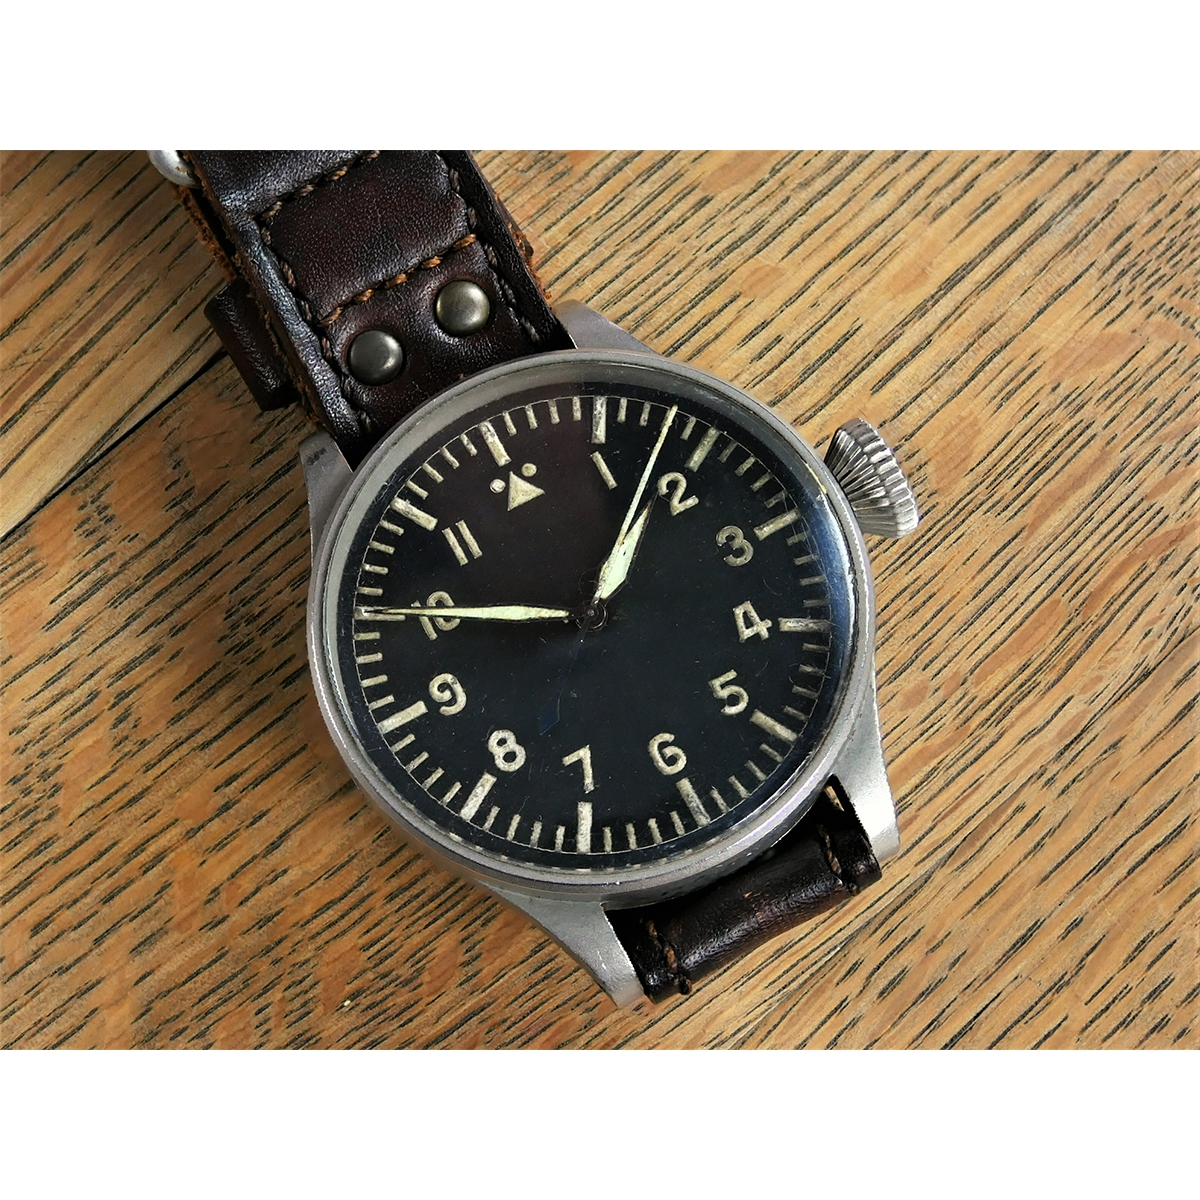 original ww2 iwc b uhr beobachtungsuhr luftwaffe. Black Bedroom Furniture Sets. Home Design Ideas